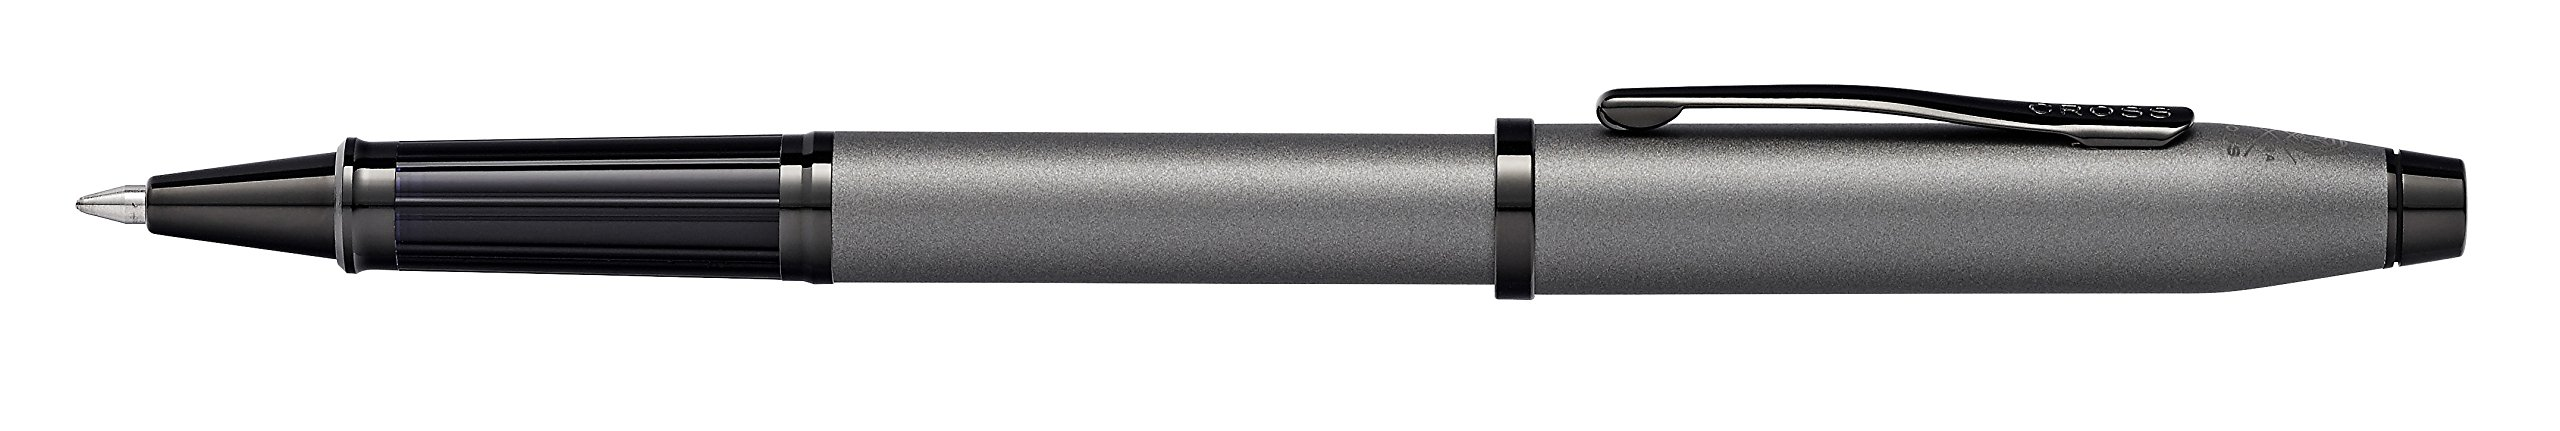 Cross Century II Gunmetal Gray Rollerball Pen with Polished Black PVD Appointments by Cross (Image #3)